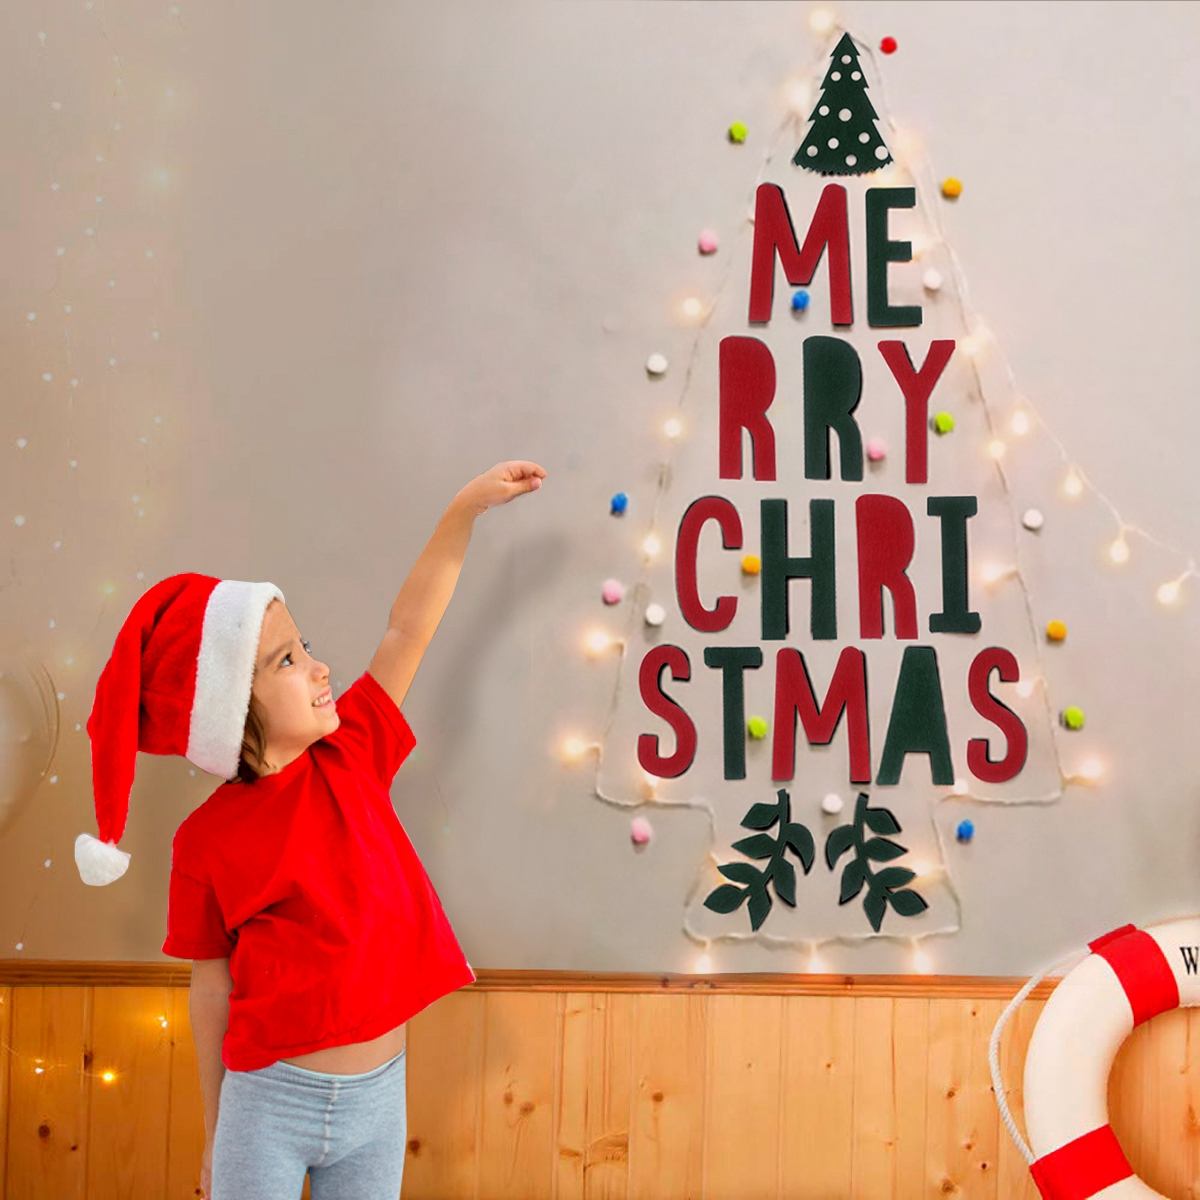 Details About Merry Christmas Tree Wall Sticker Decal Led Light Fairy String Home Xmas Decor